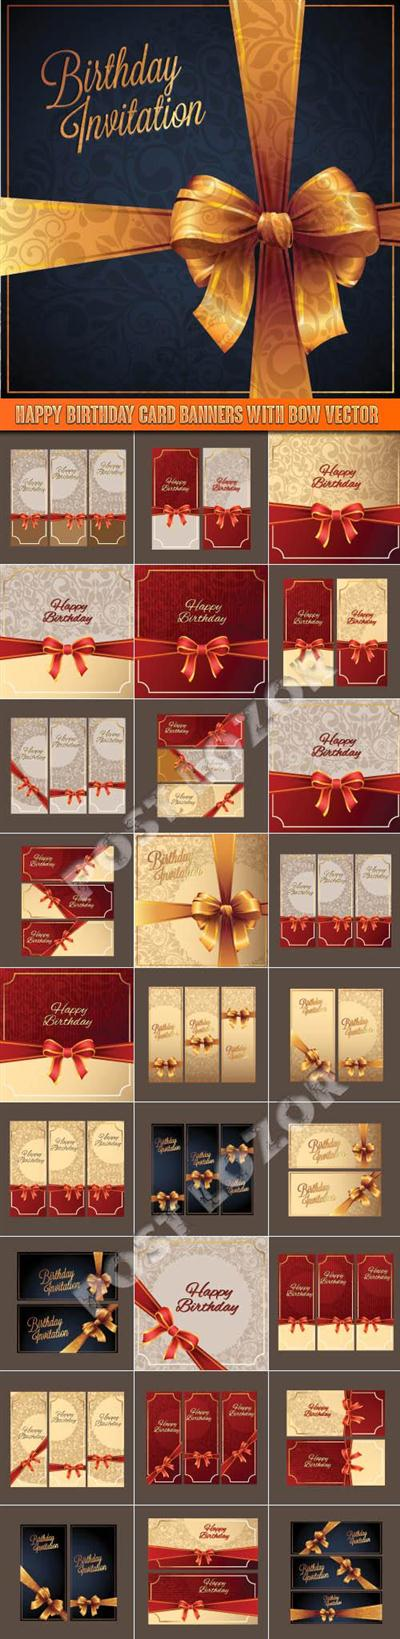 Happy Birthday card banners with bow vector